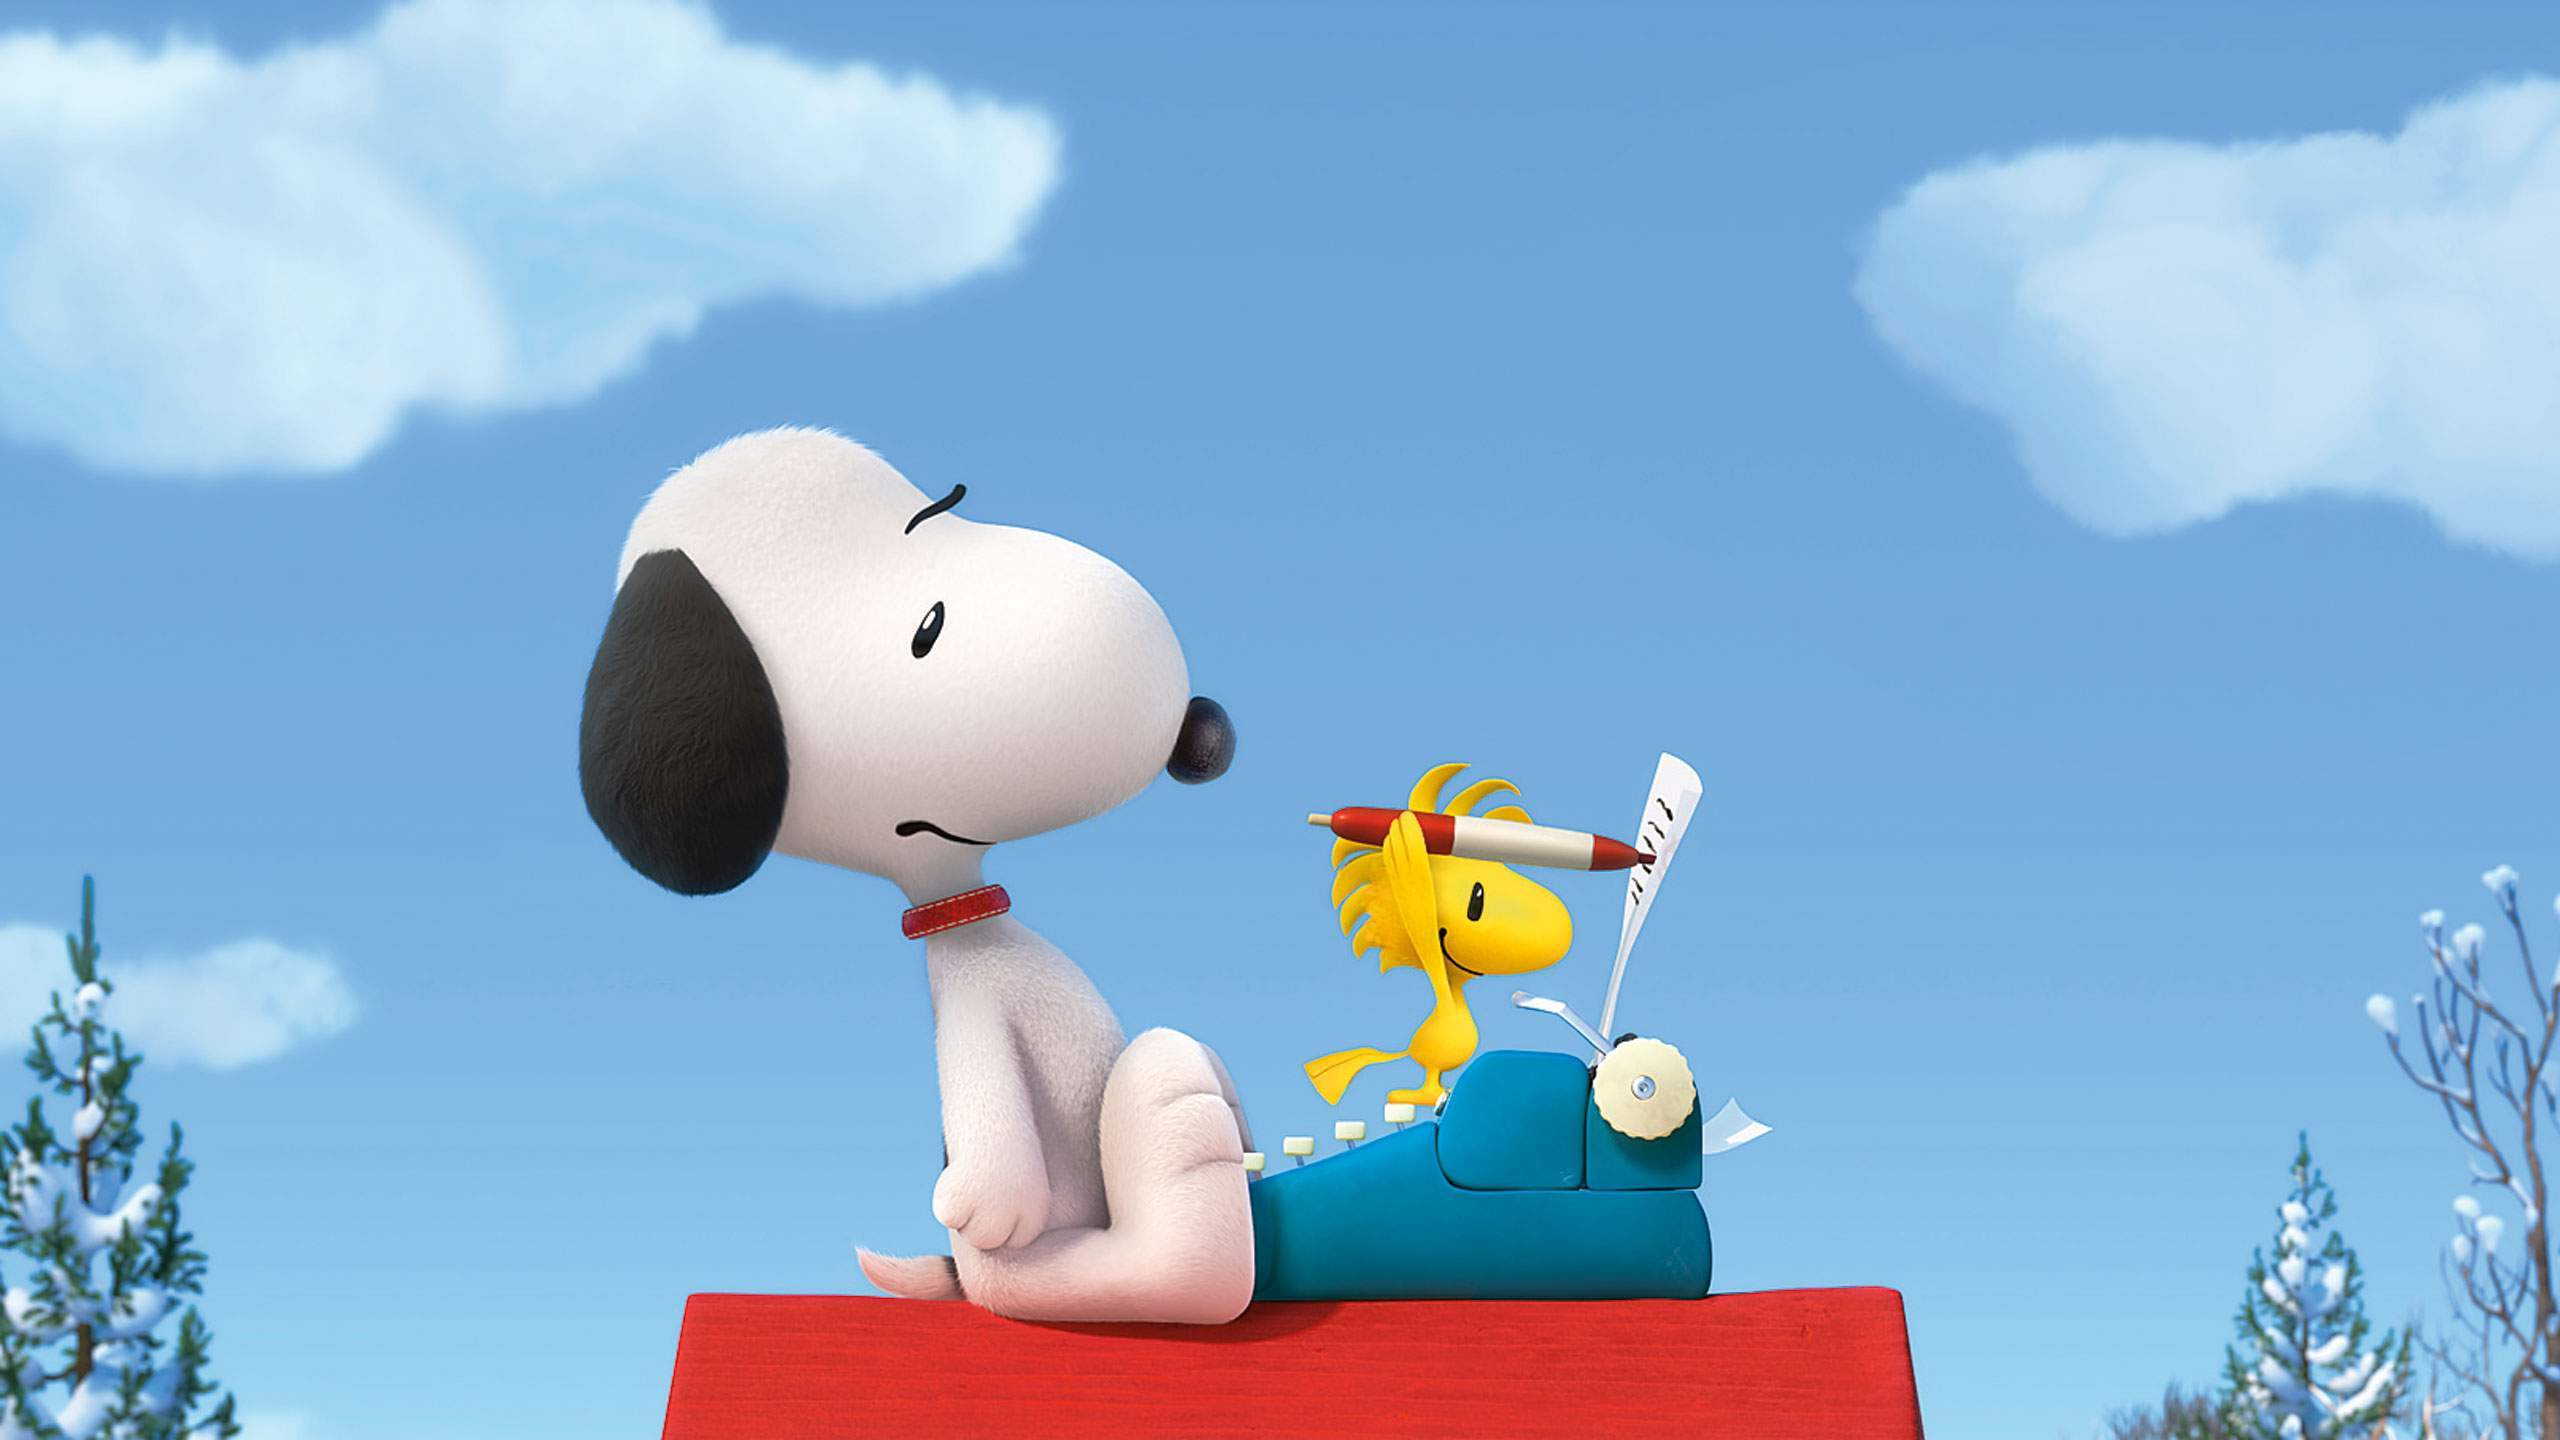 Snoopy Wallpapers - Top Free Snoopy